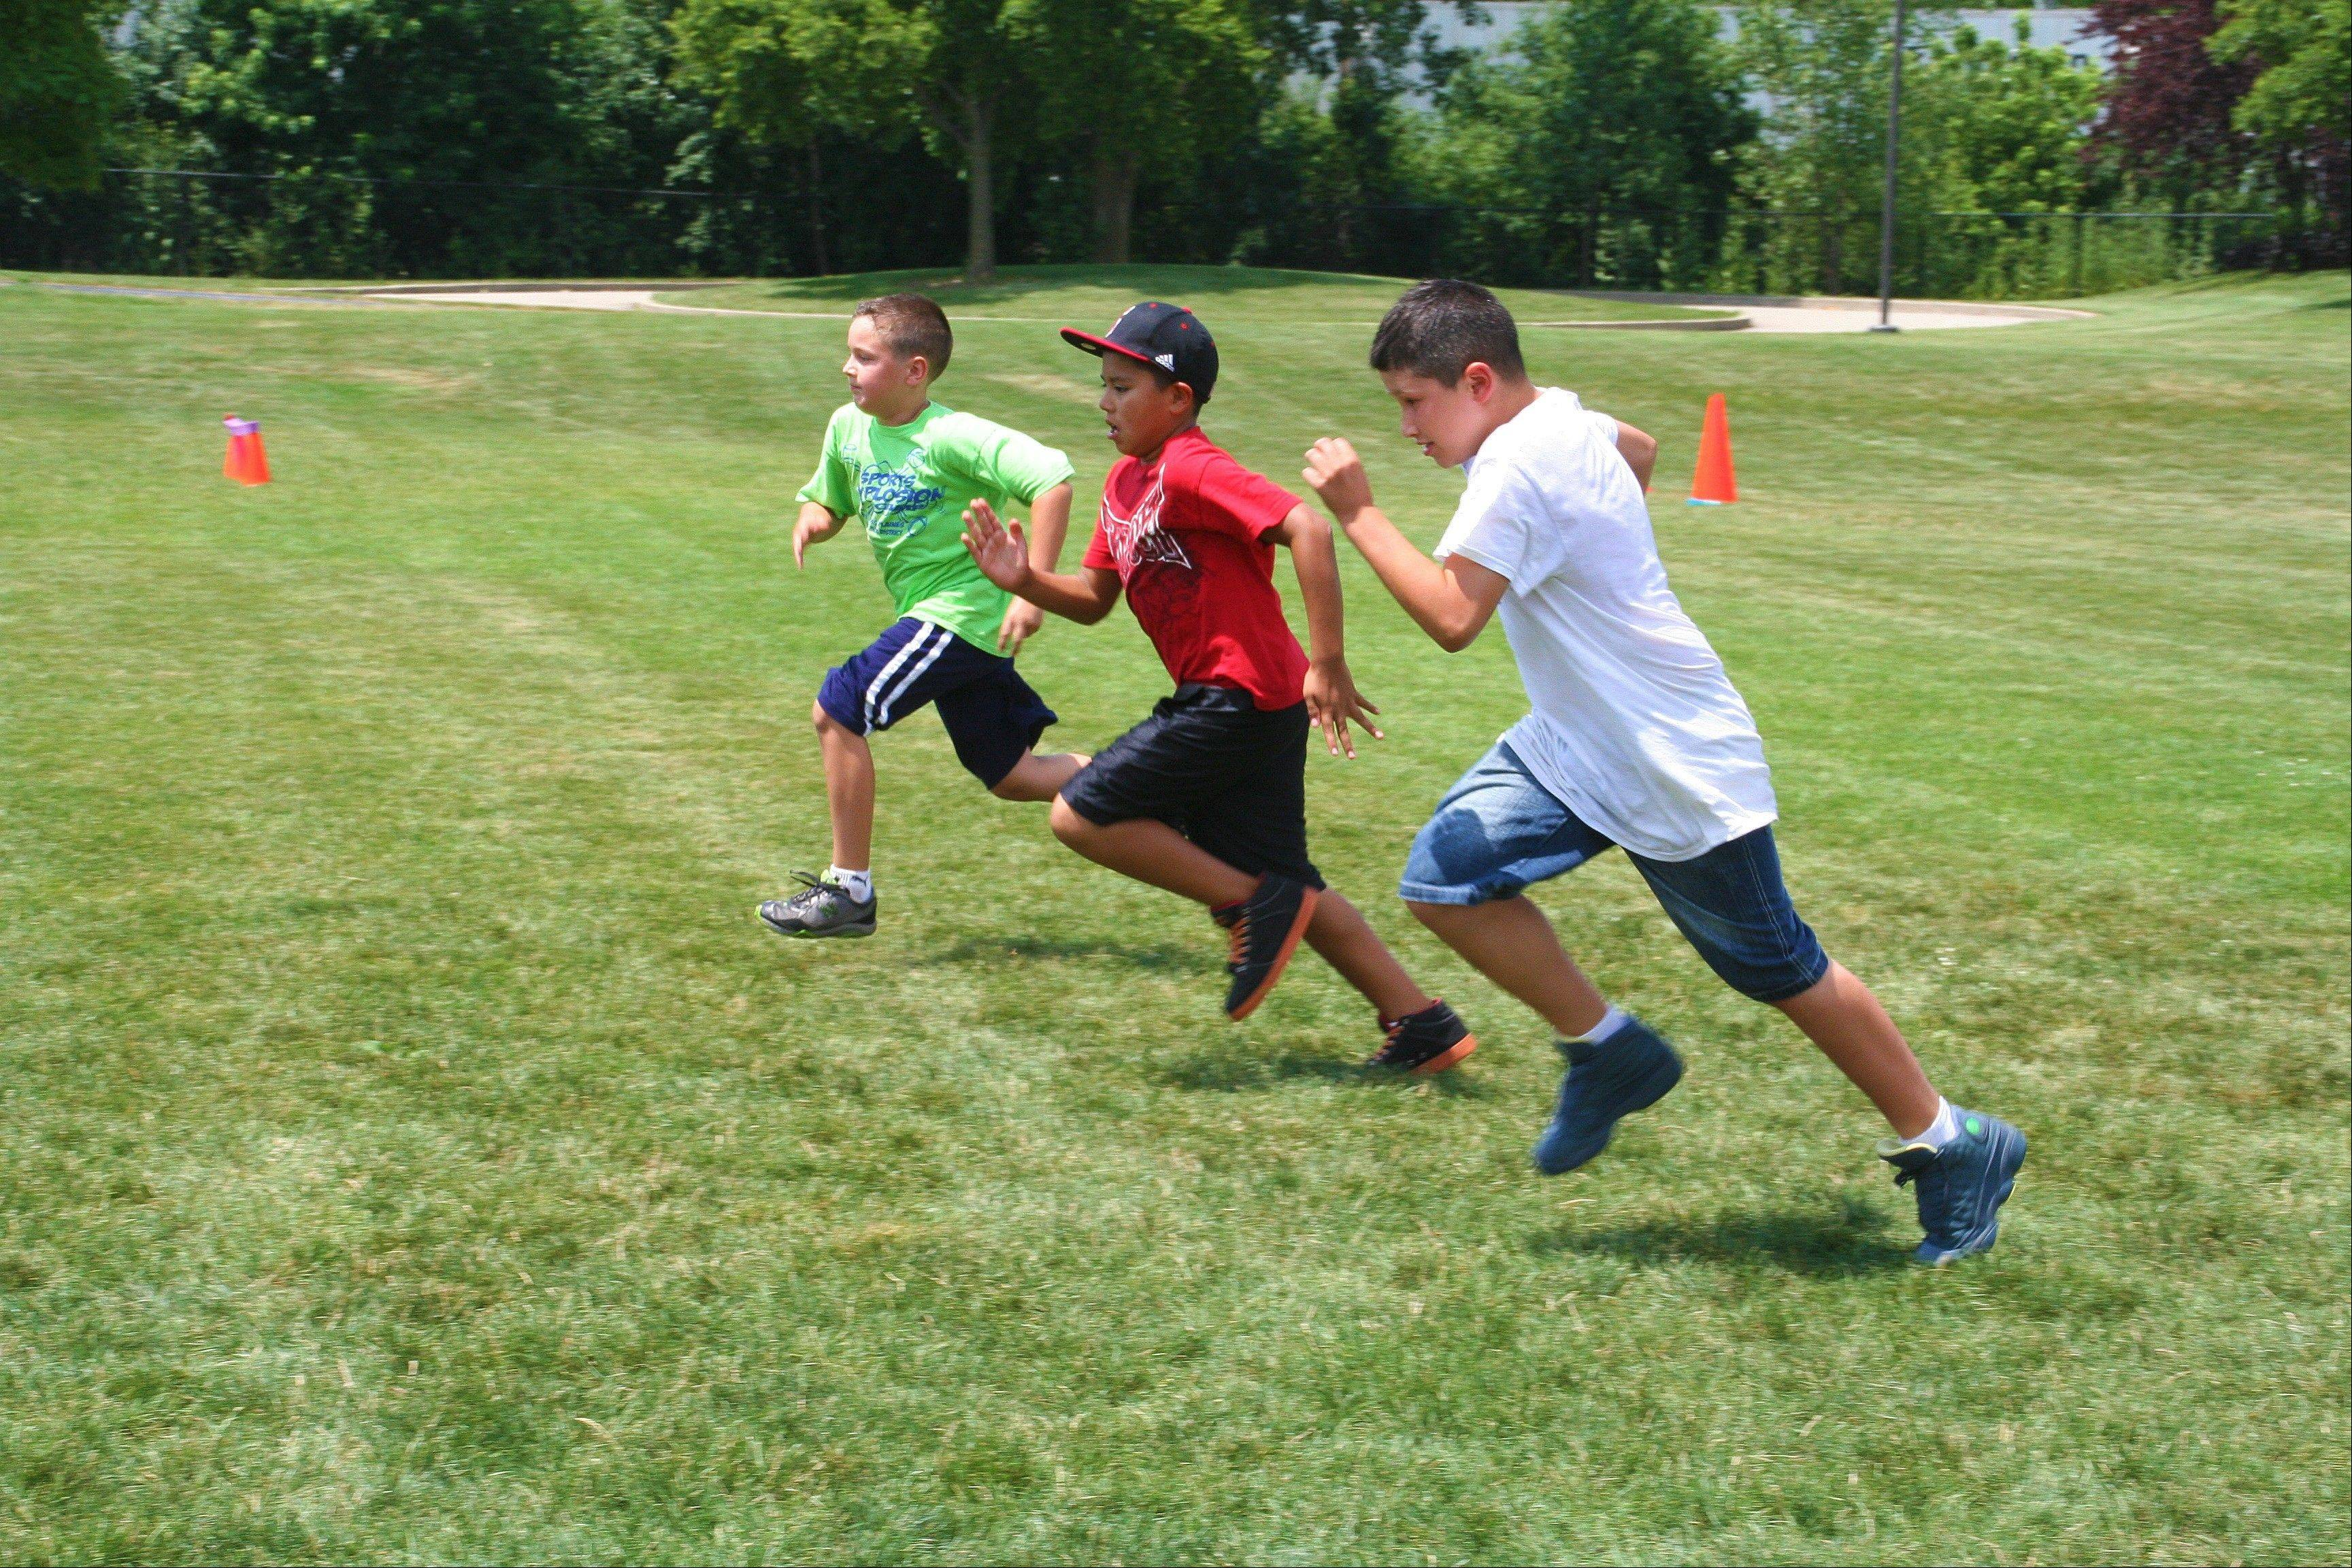 Campers from Sports Xplosion (green), West Park (red) and Camp Opeka (white) take to the field in the 50-yard dash during the 2013 All Camp Field Day at Prairie Lakes July 17.